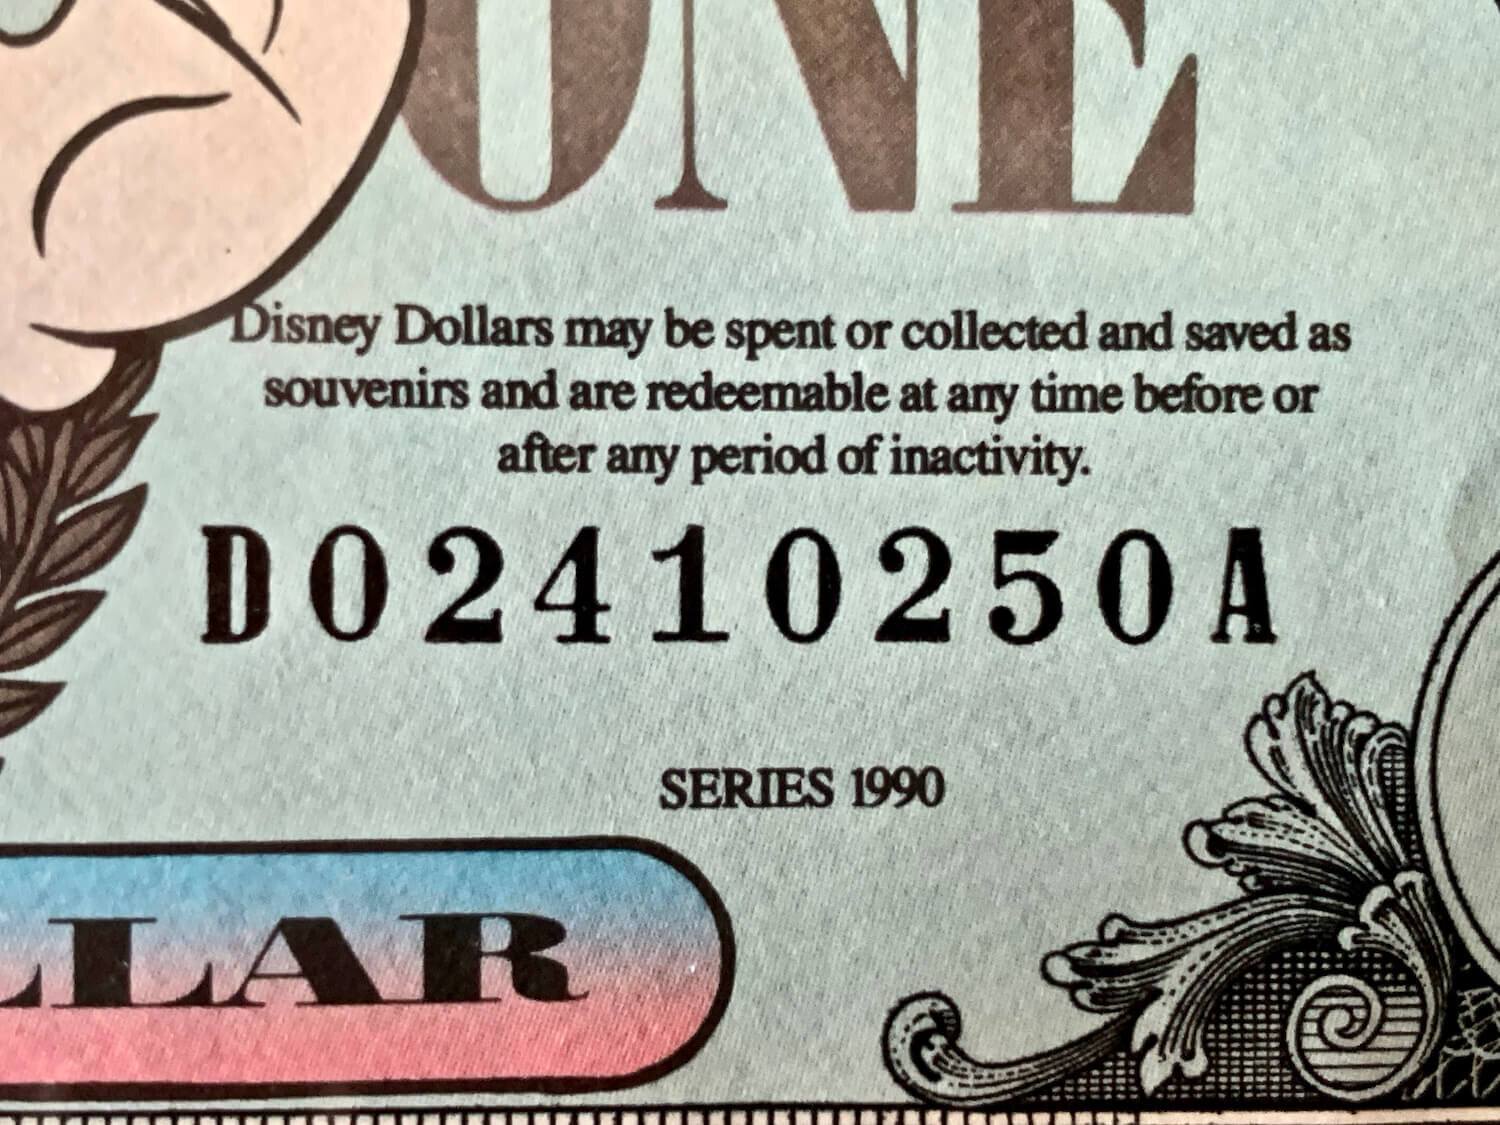 Disney Dollar Serial Number